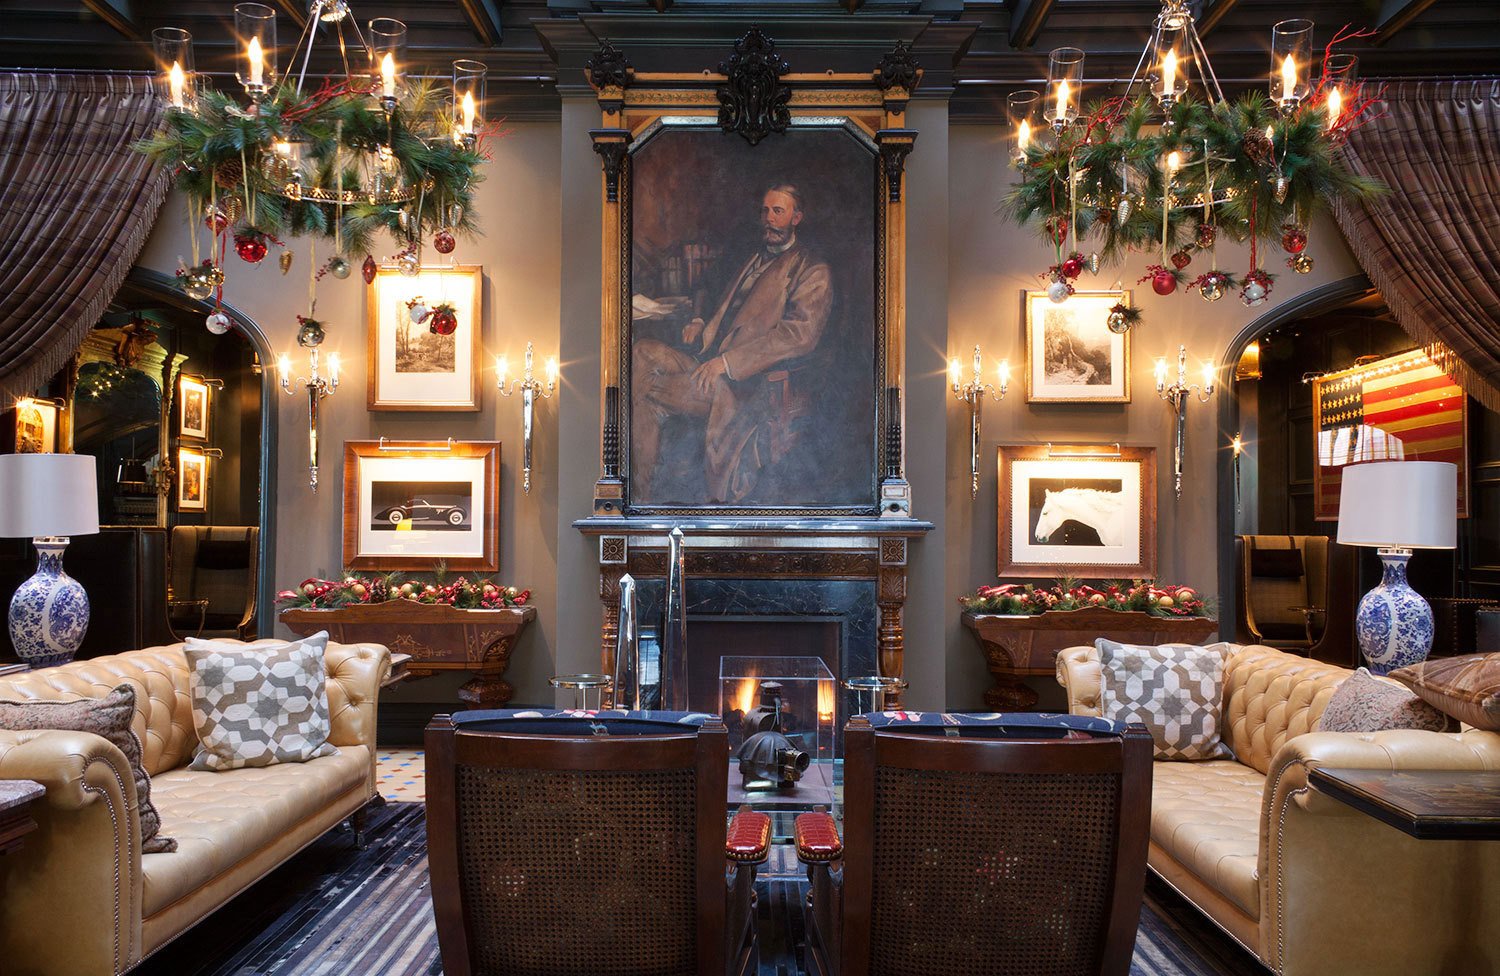 A portrait of Jerome B. Wheeler has pride of place among the leather chesterfields in the lobby of Aspen's Hotel Jerome.